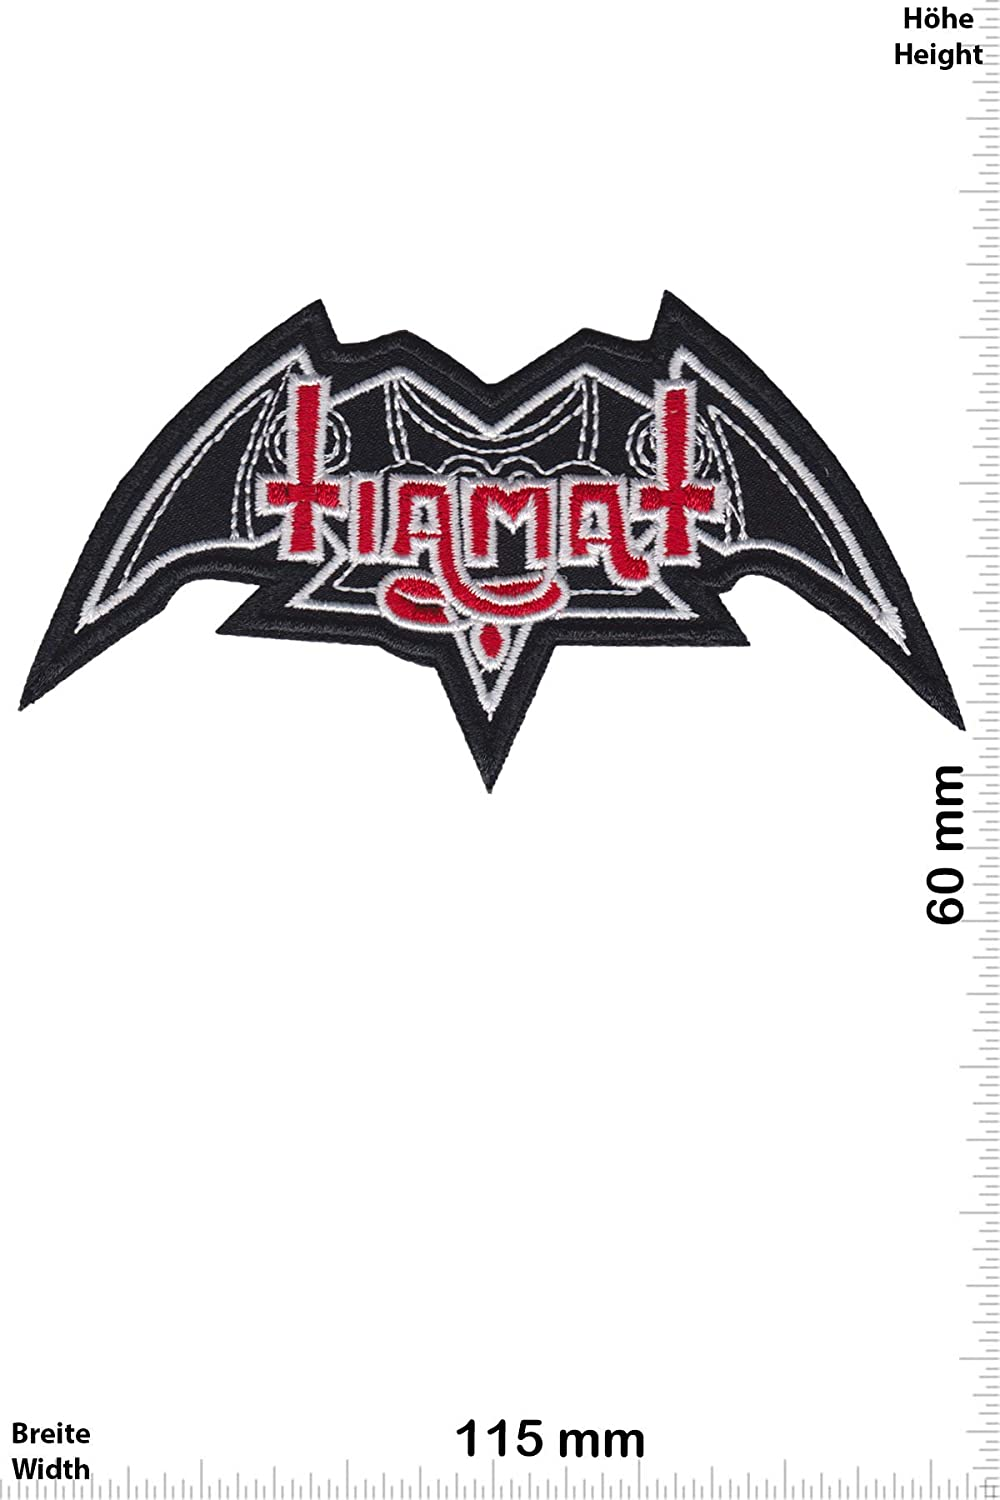 Patch - Tiamat - Gothic Metal - Red Silver -Musique - -Tiamat - Iron on Applique Embroidery Écusson brodé Costume Cadeau- Give